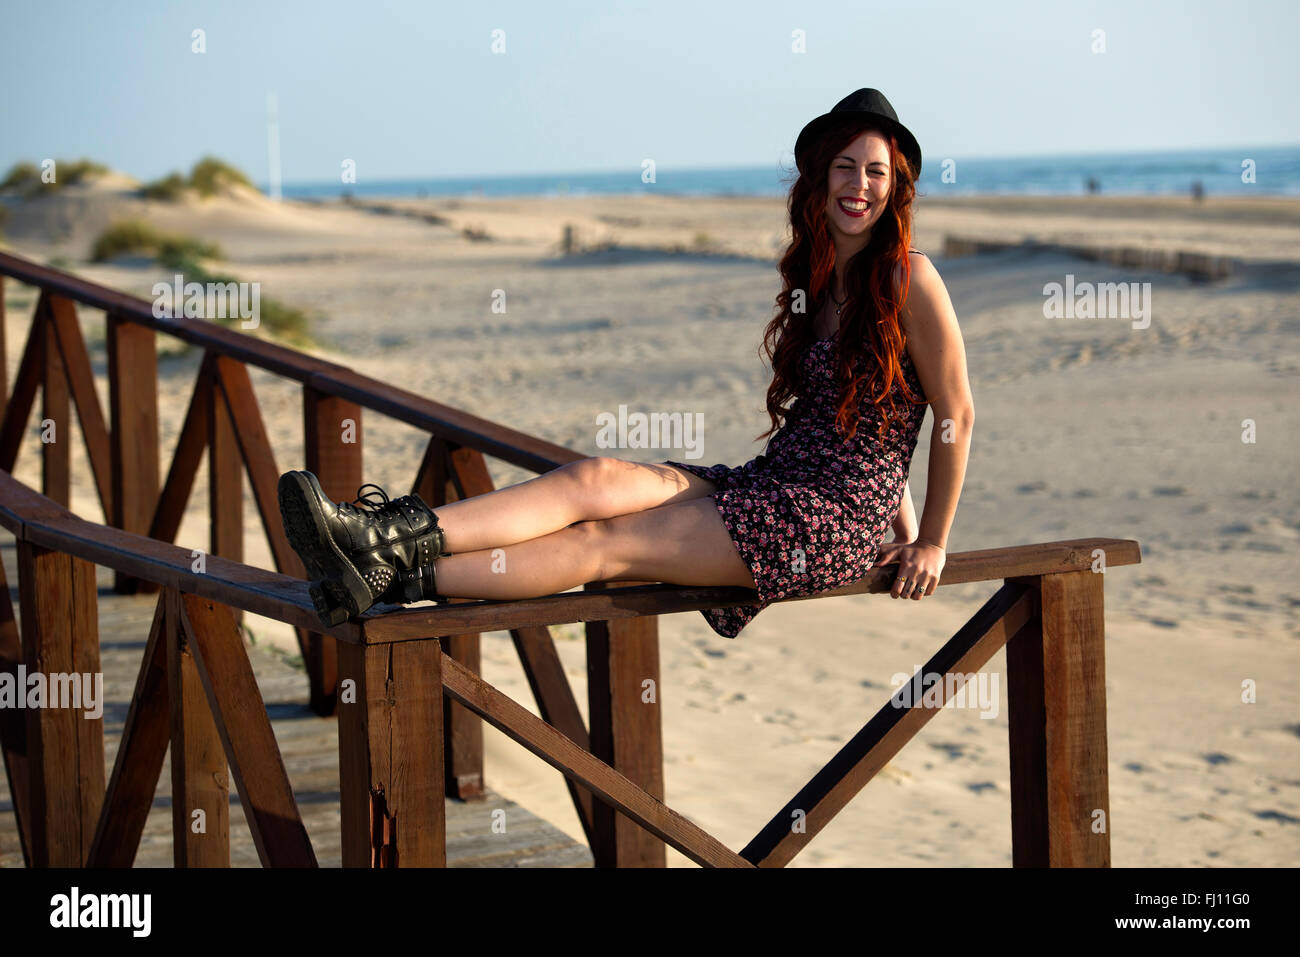 Spain, Cadiz, portrait of young redheaded woman sitting on railing of boardwalk at the beach Stock Photo